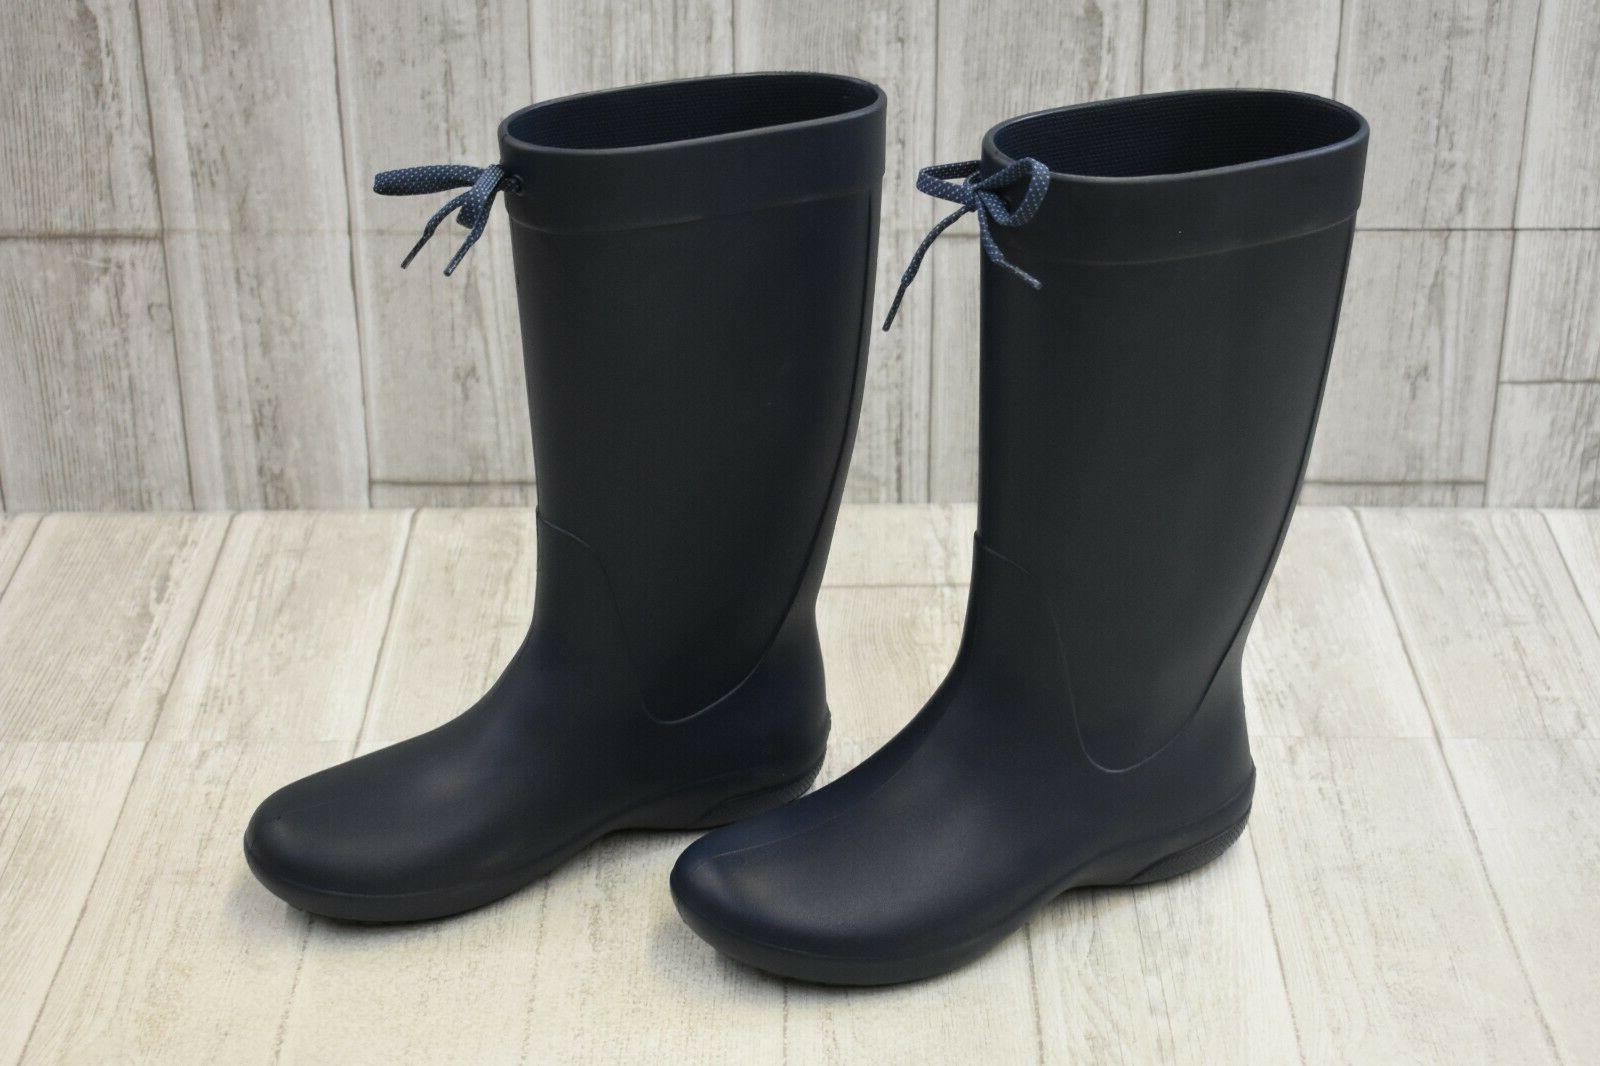 Crocs Rain Boots, Women's NEW